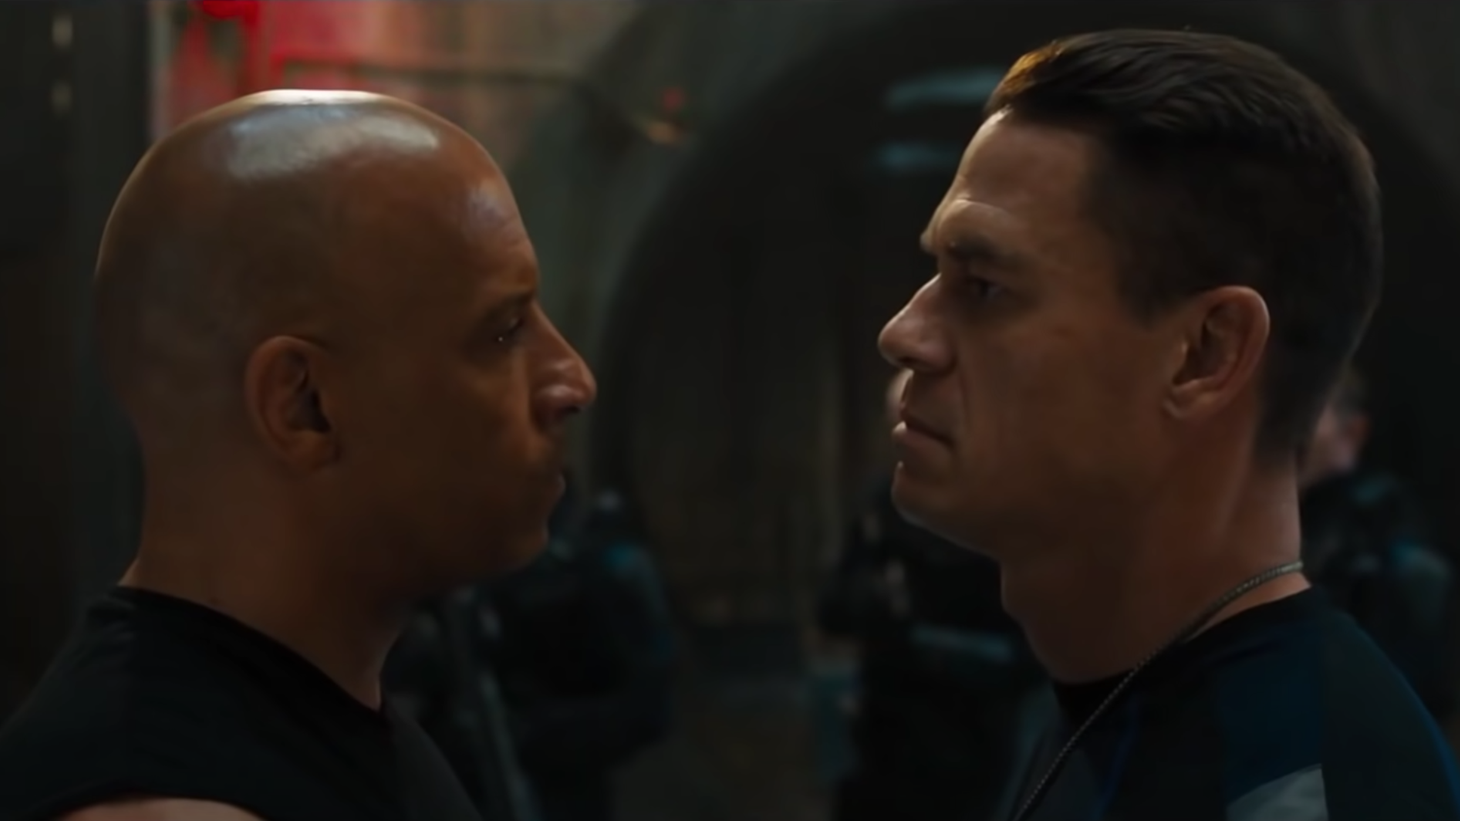 The latest Fast & Furious film stars Vin Diesel and John Cena, who plays Diesel's brother.